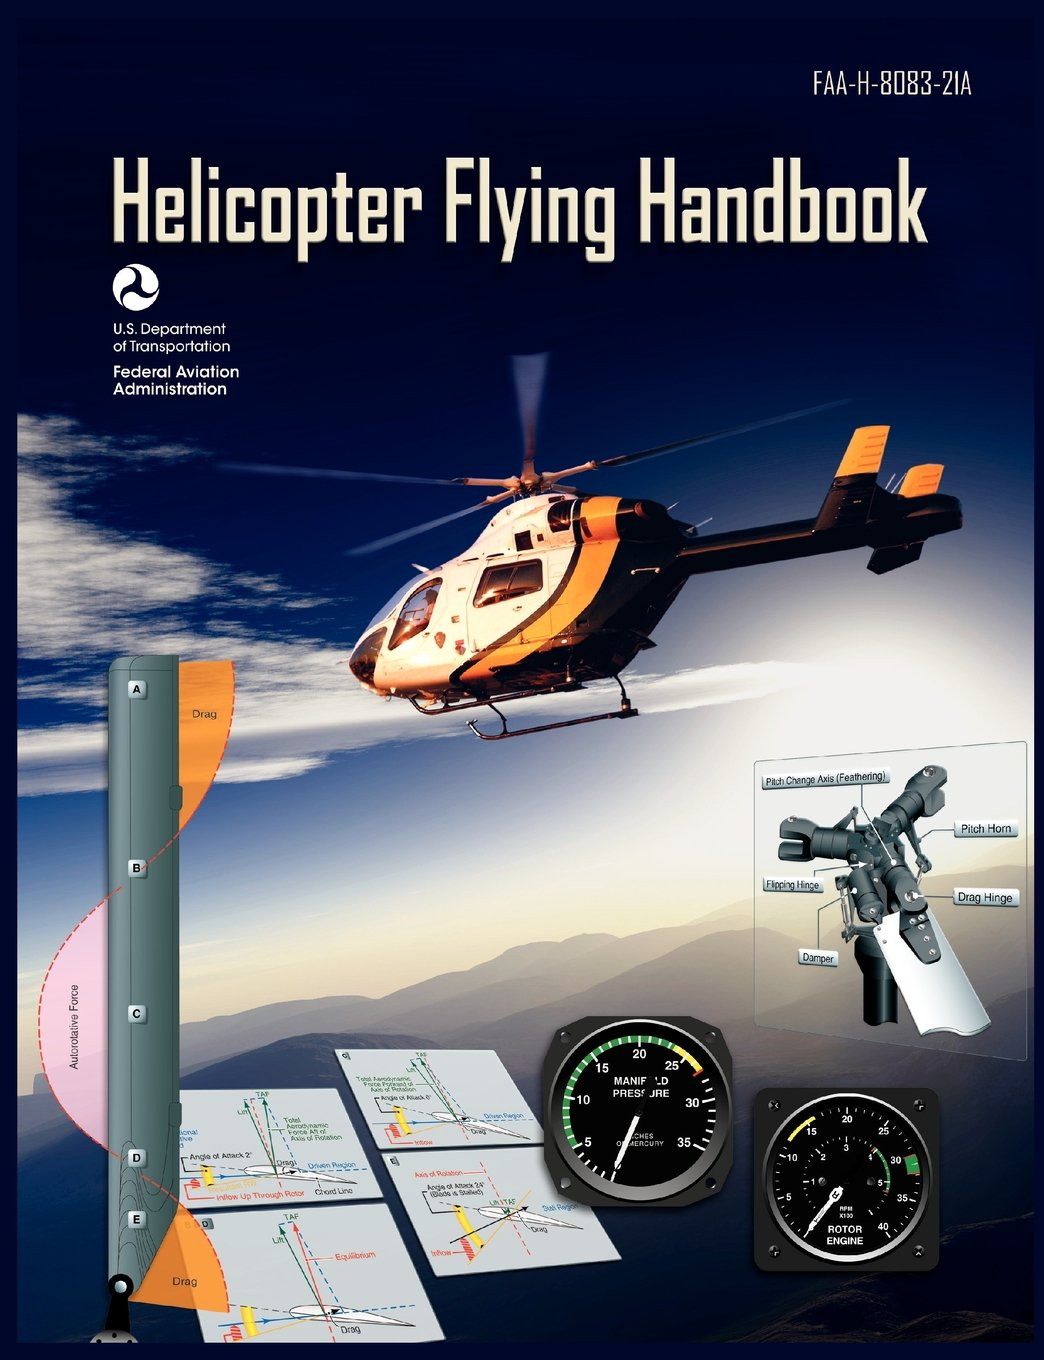 Helicopter flying handbook faa 8083 21a 2012 revision federal helicopter flying handbook faa 8083 21a 2012 revision federal aviation administration u s department of transportation flight standards service fandeluxe Images